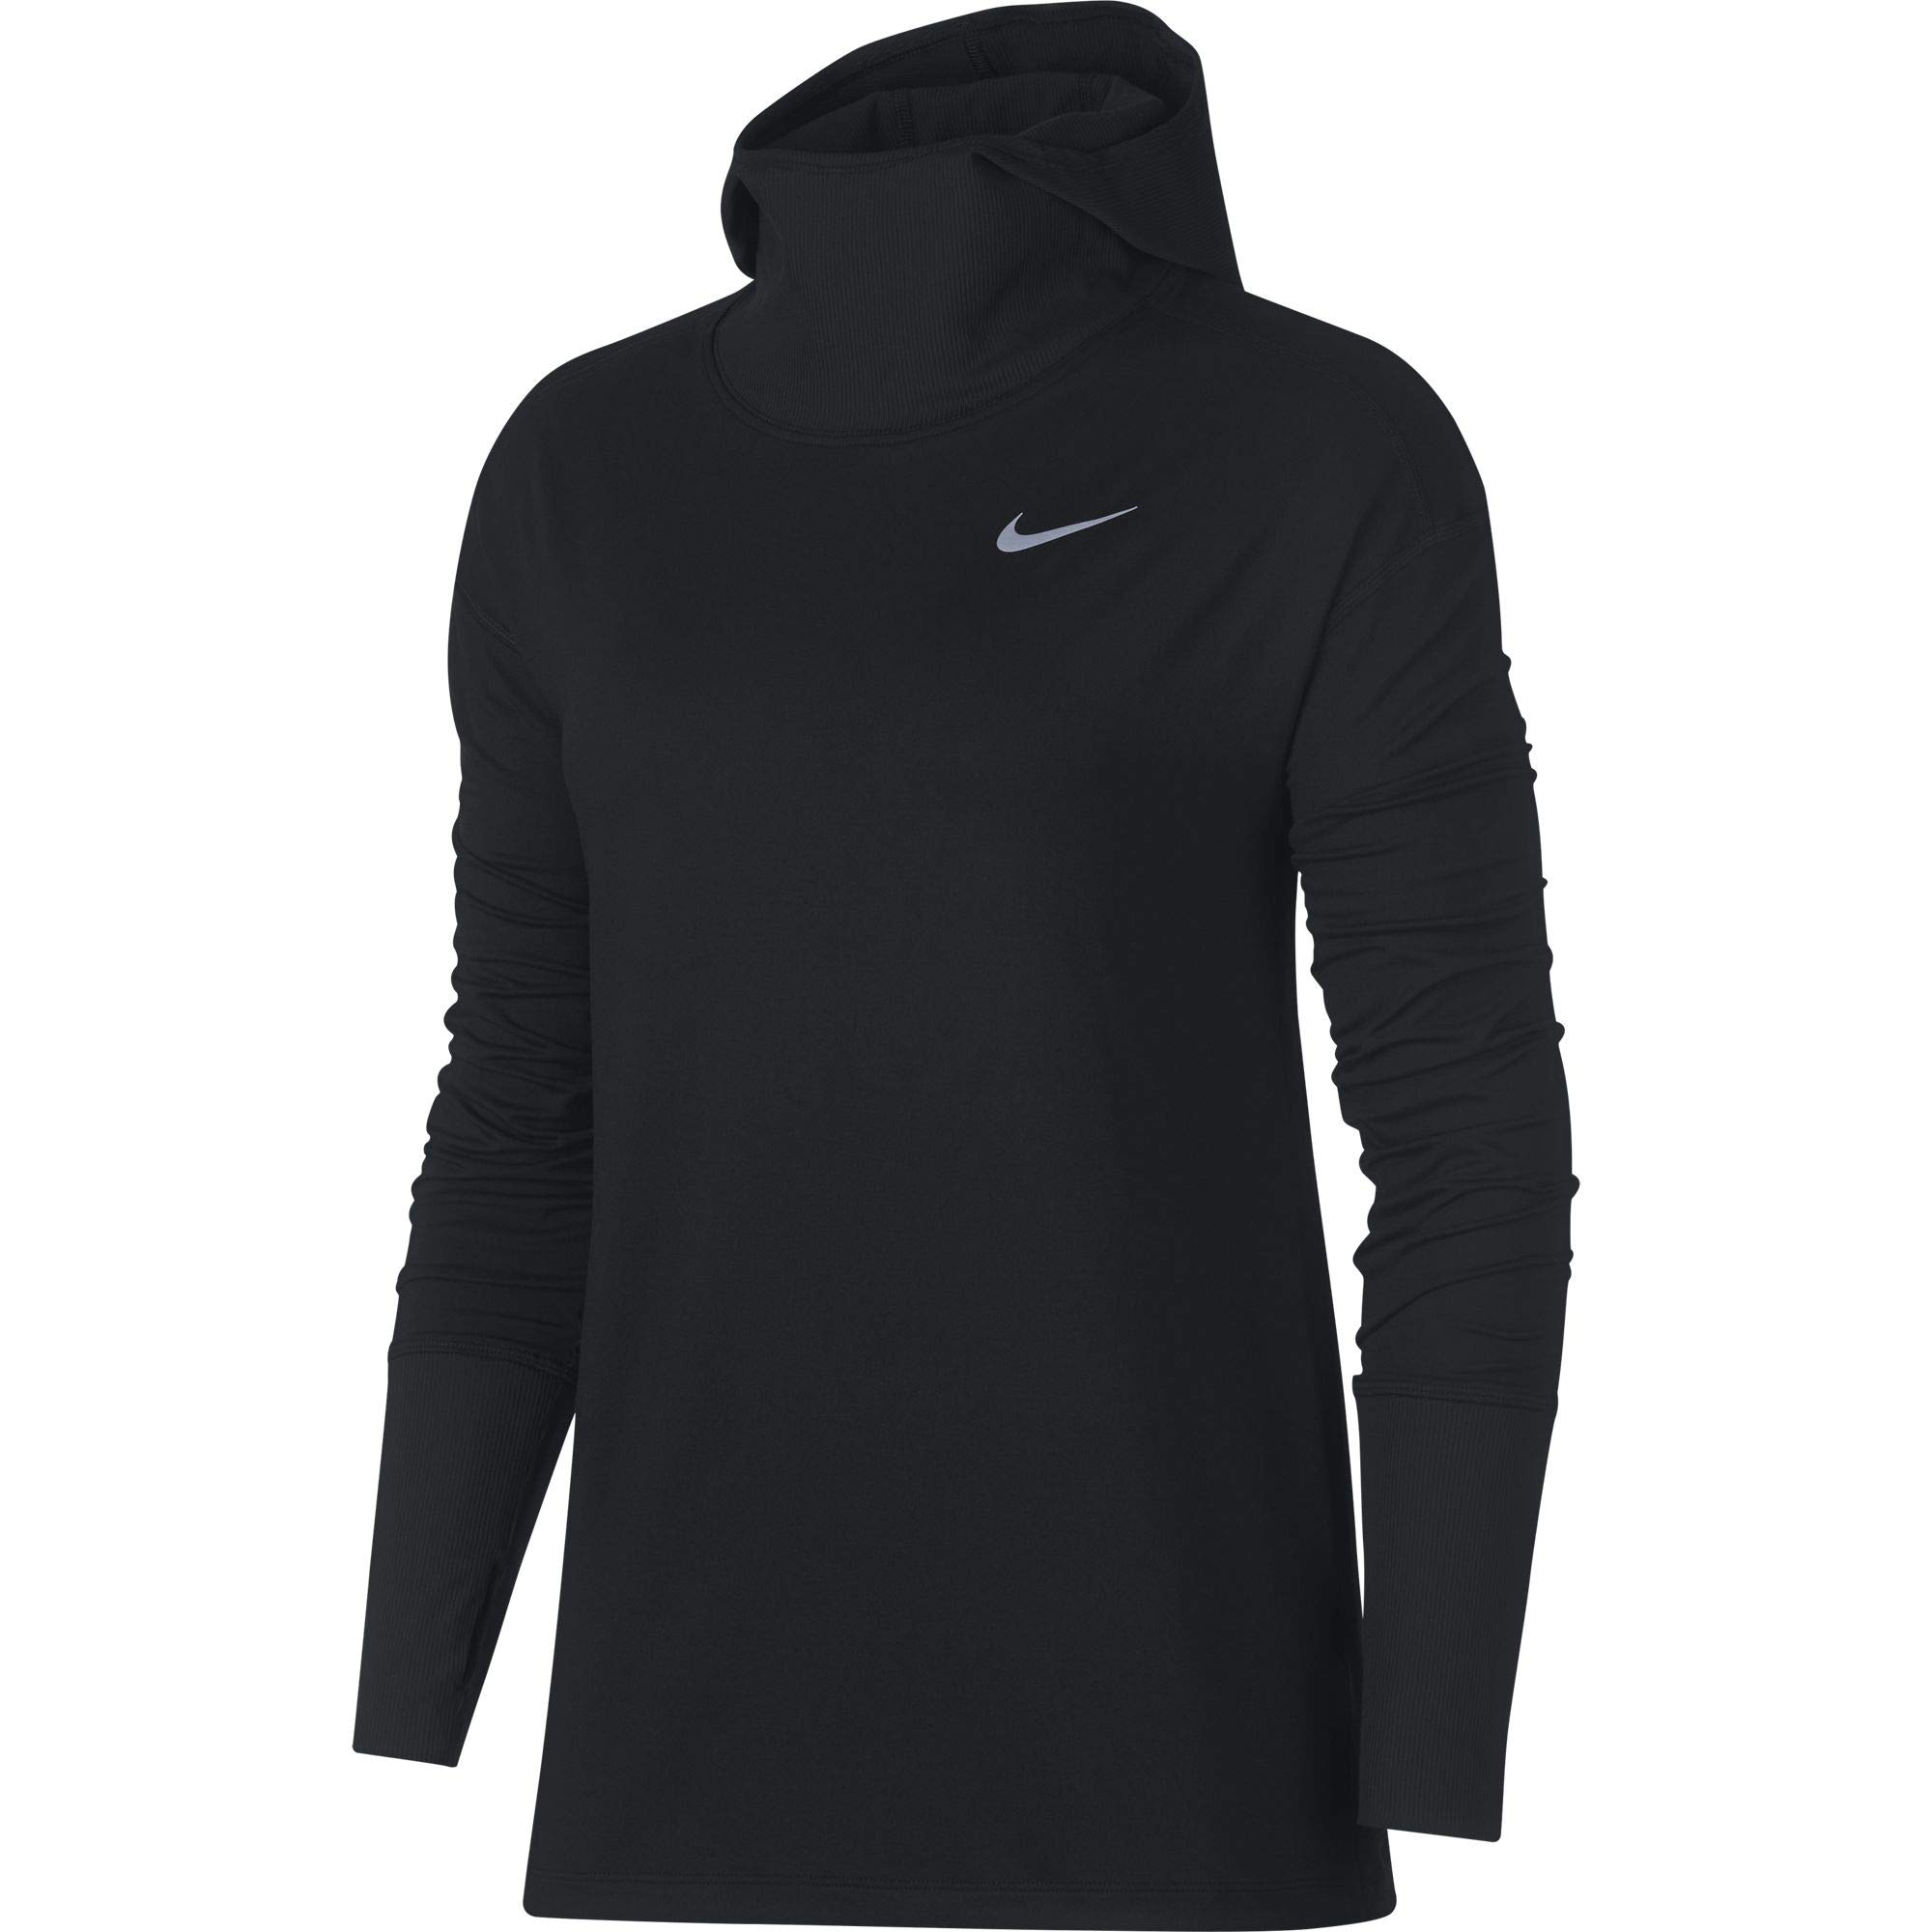 Nike Women's Element Running Hoodie Black Size Medium